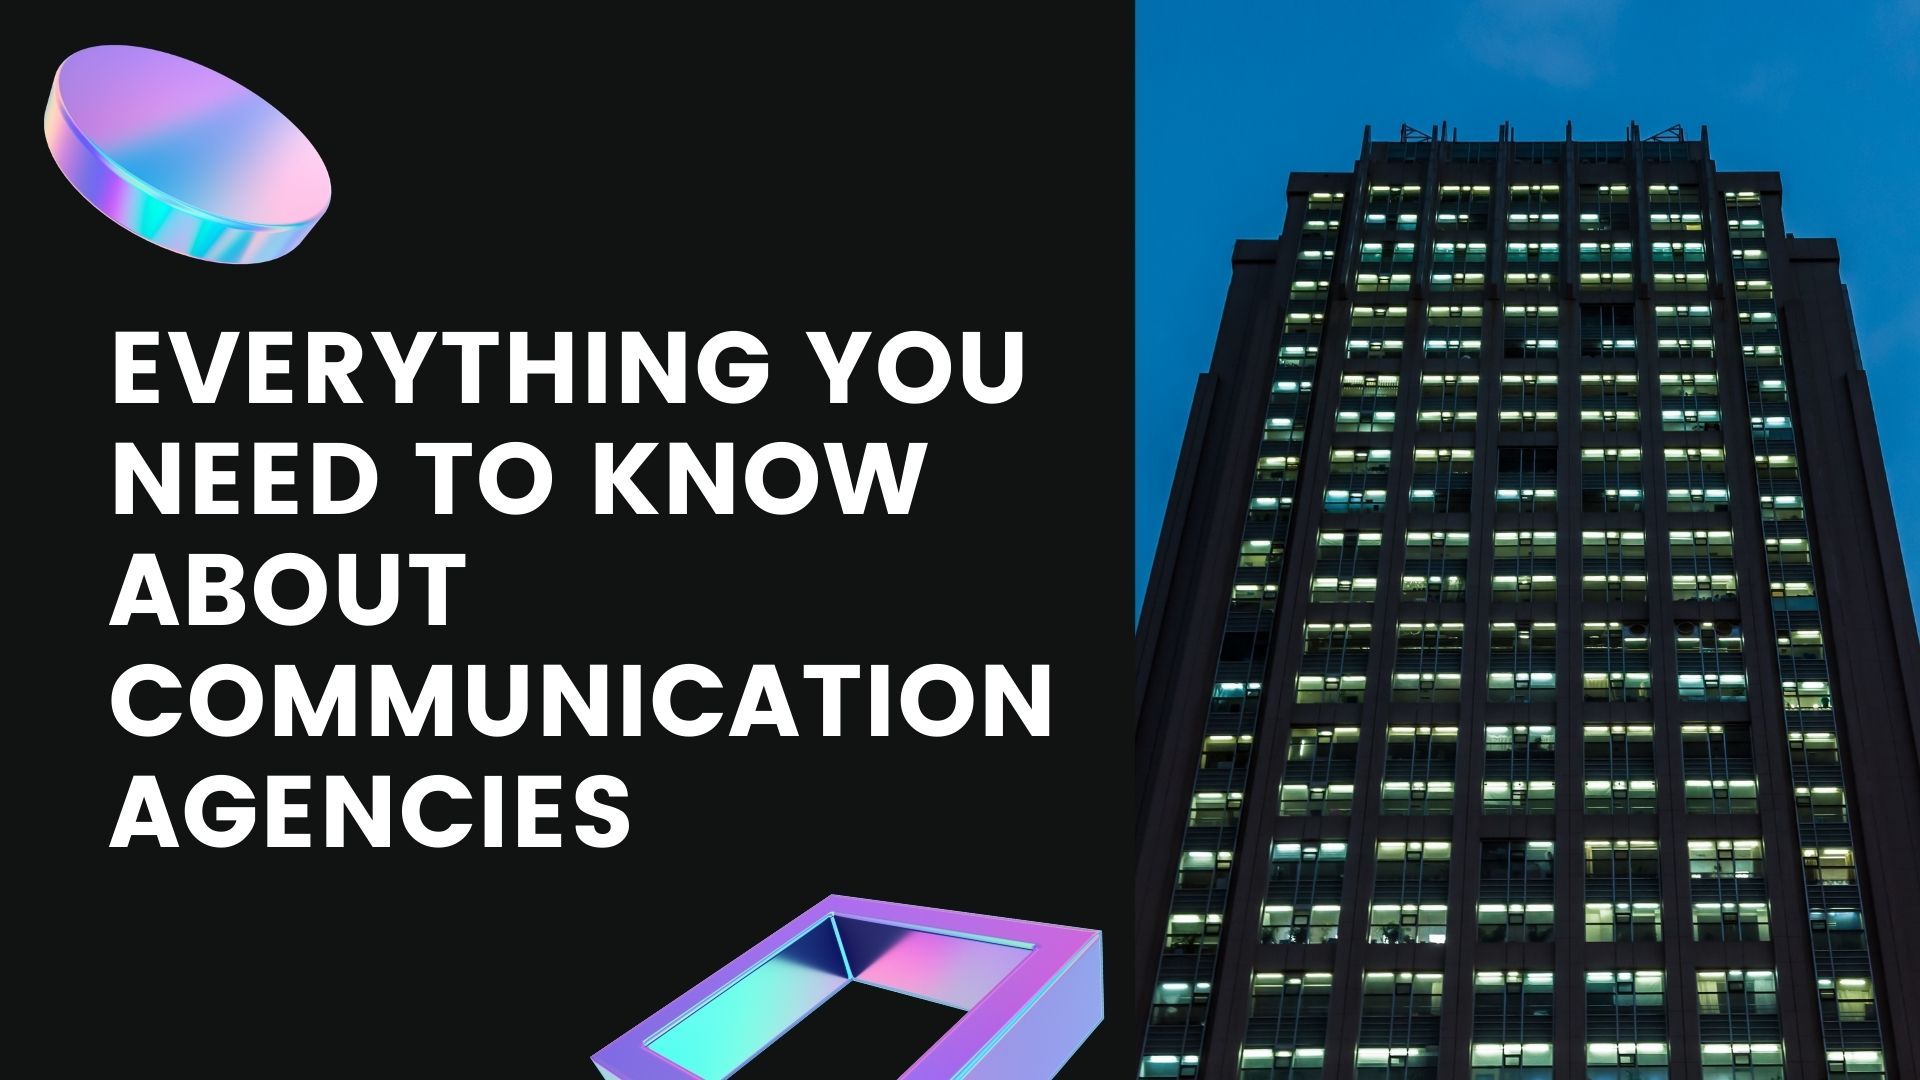 Everything You Need To Know About Communication Agencies